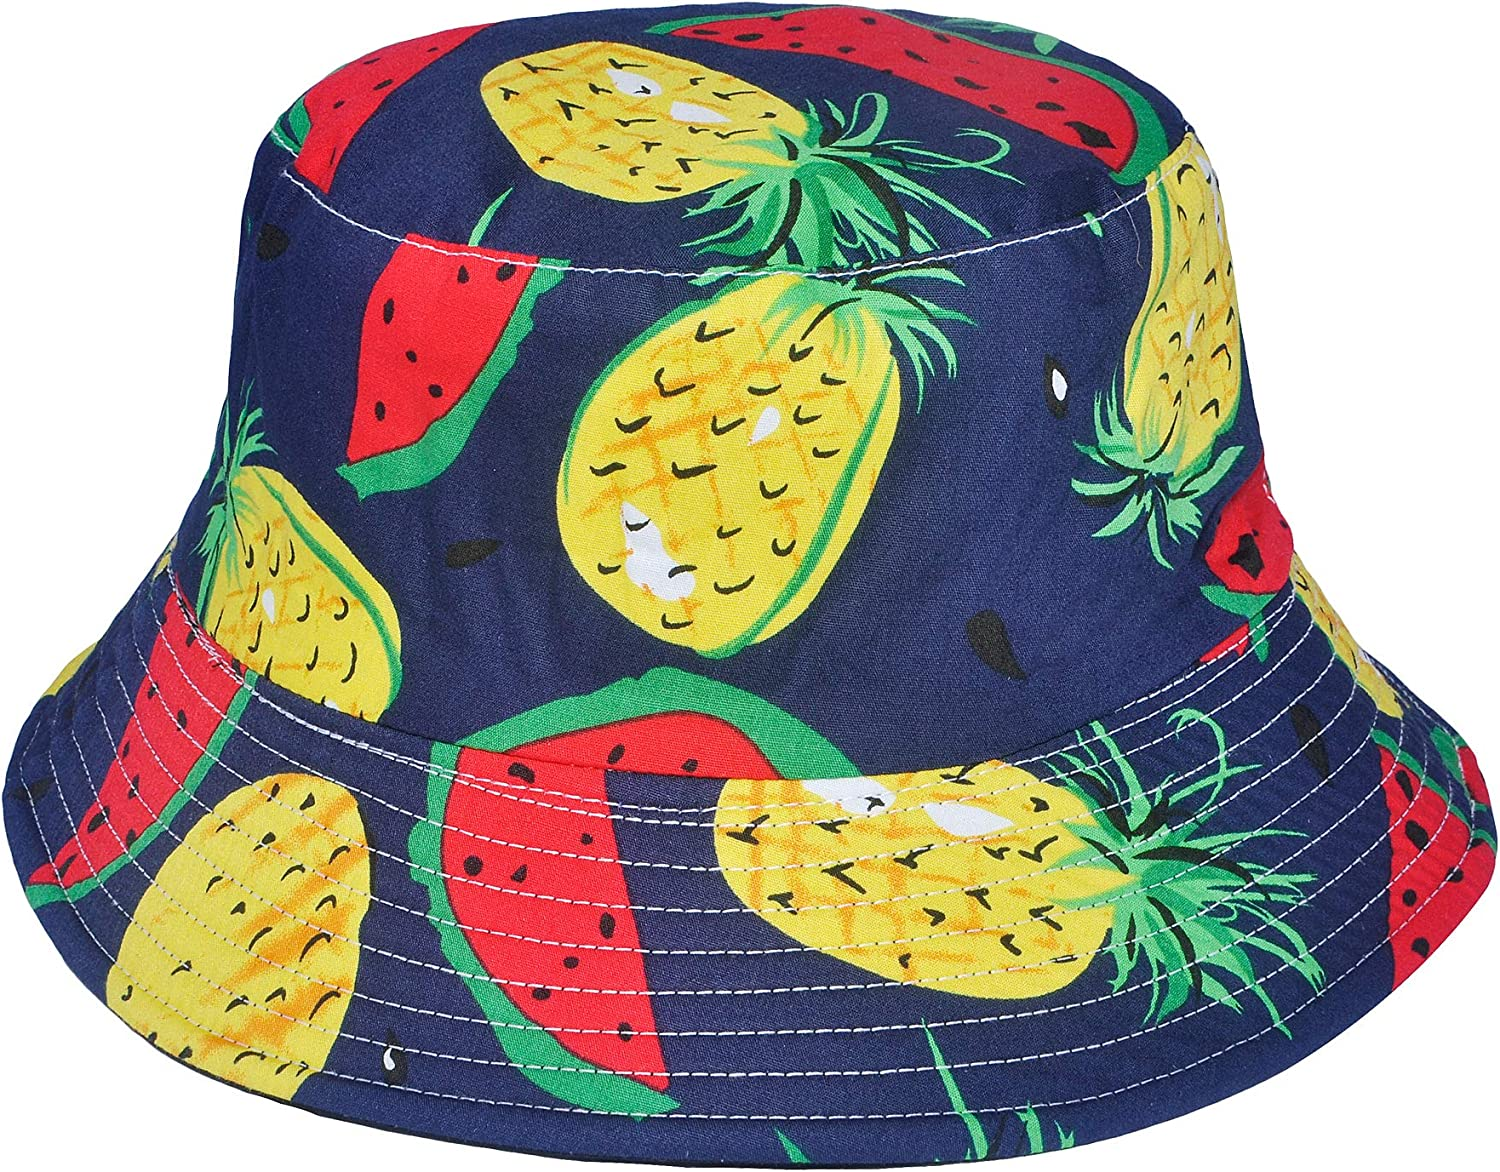 ZLYC Unisex Cute Print Bucket Hat Summer Fisherman Cap